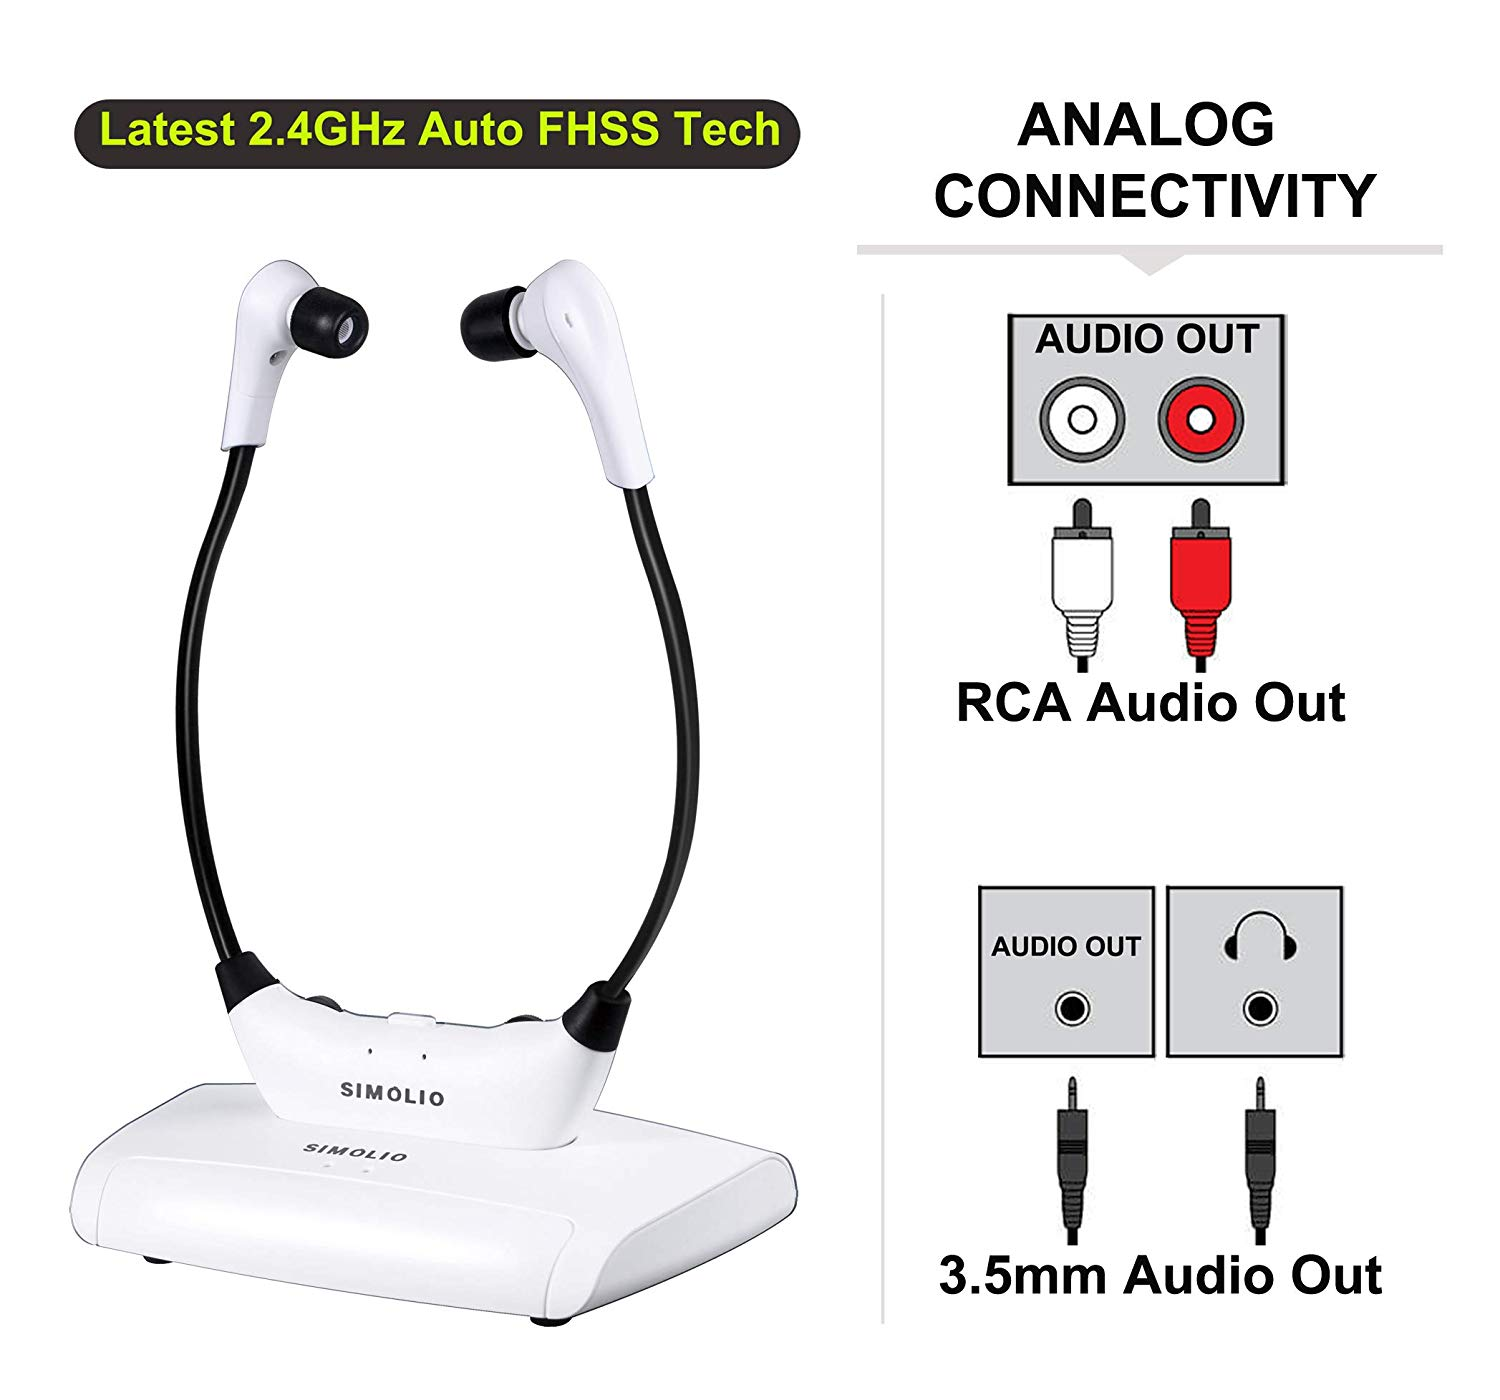 Simolio Wireless TV Headsets, TV Hearing Devices, Hearing Assistance TV Listening Headphones System for Seniors, in-Ear Wireless TV Headphone with Extra Soft Earbuds, TV Sound Amplifier (SM-823)